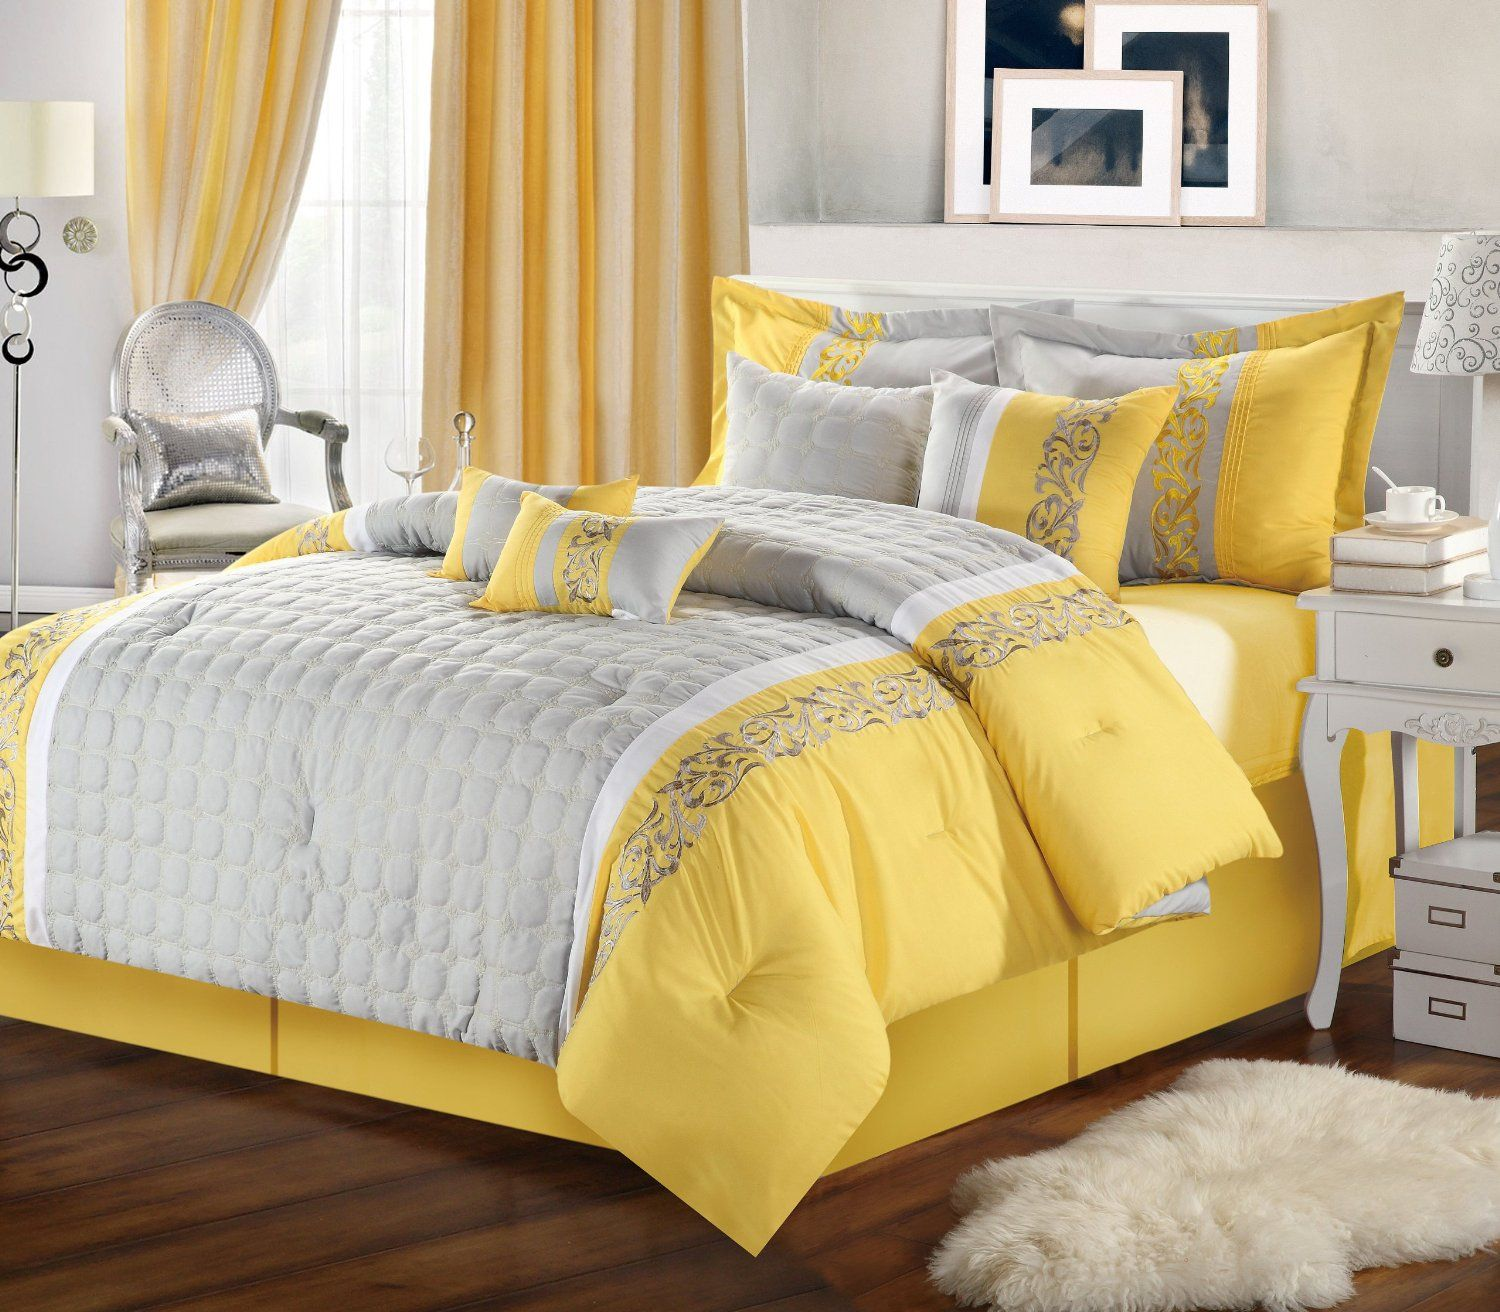 Brown and yellow bedroom - Bedroom Decor